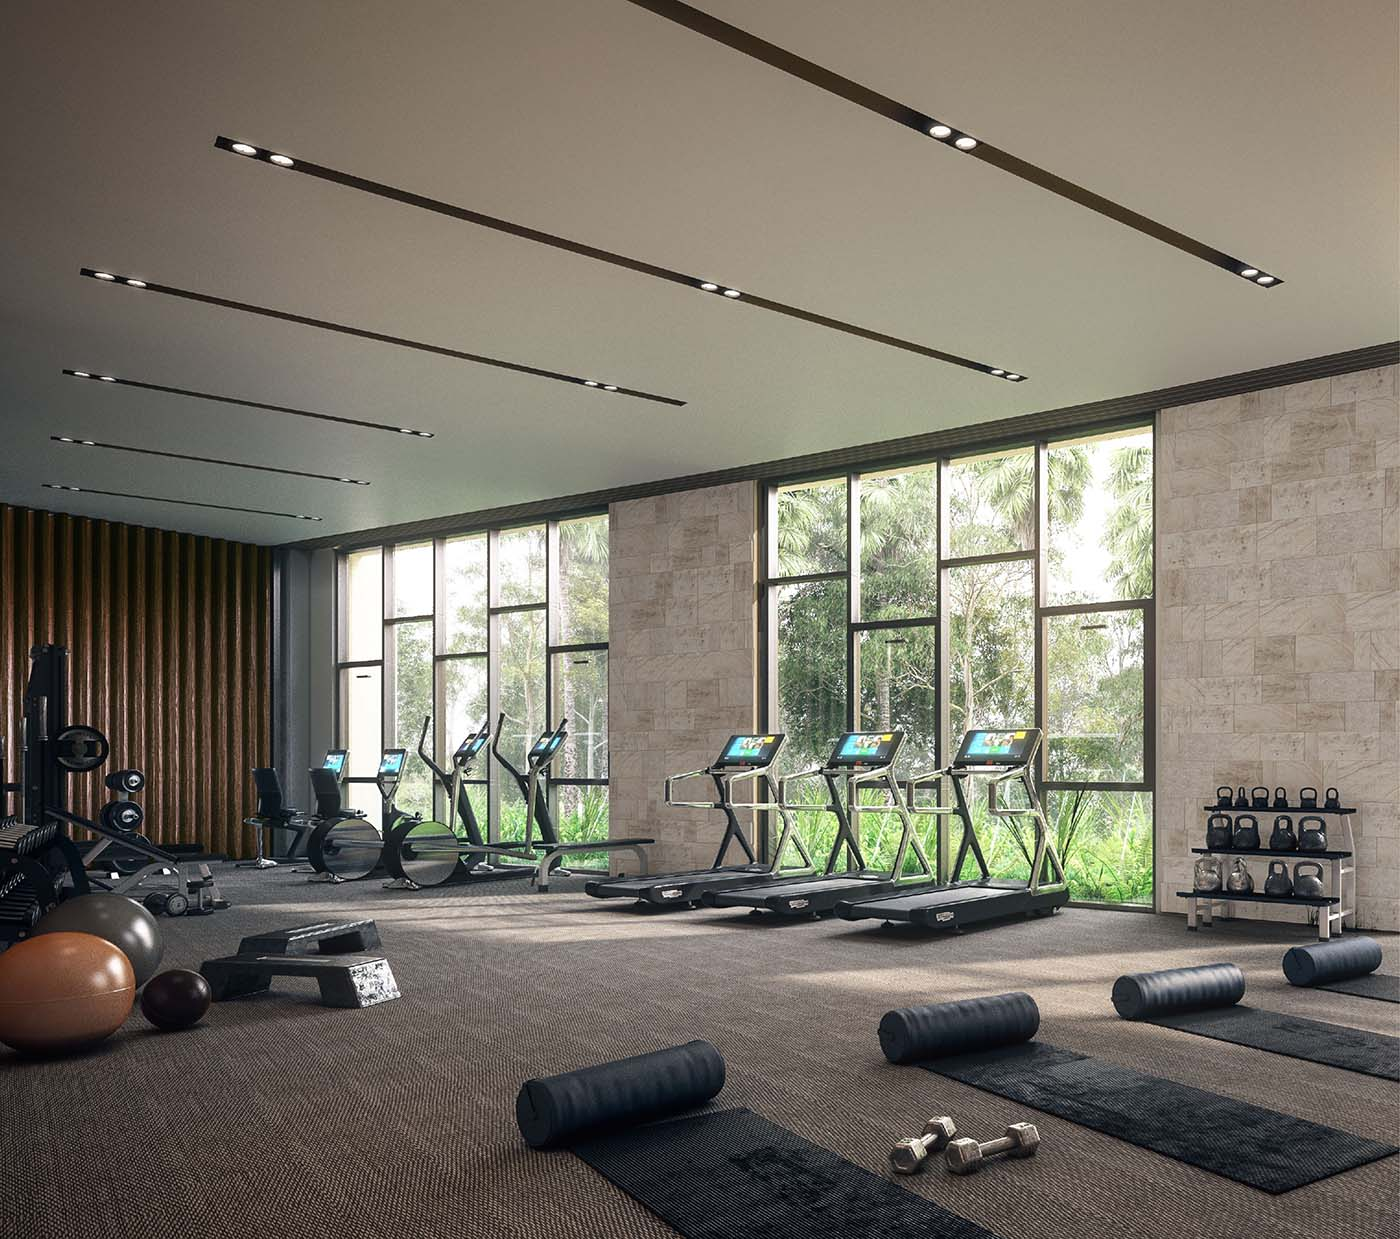 Gym area of a retirement village with floor mats and exercise machines.